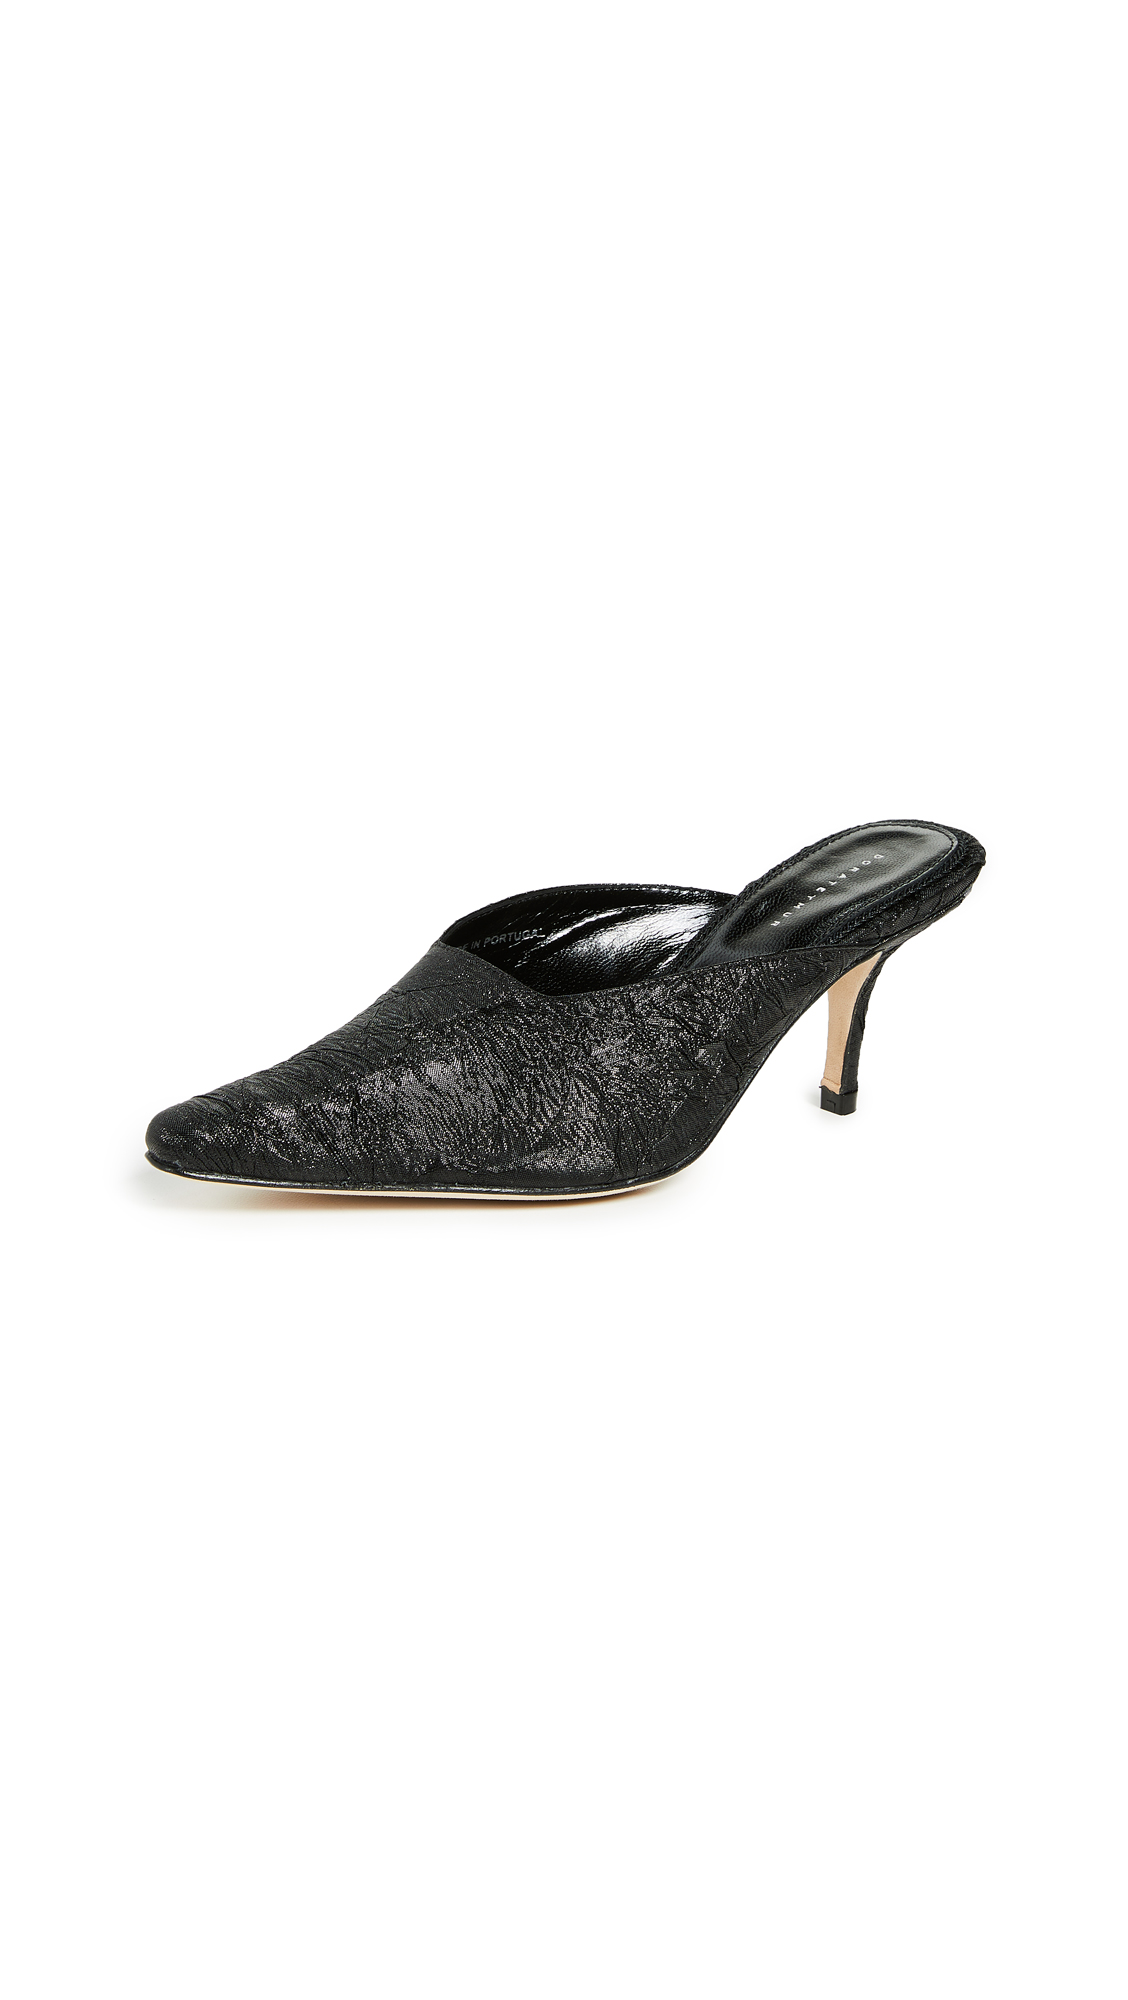 Dorateymur Groupie Mules - Black